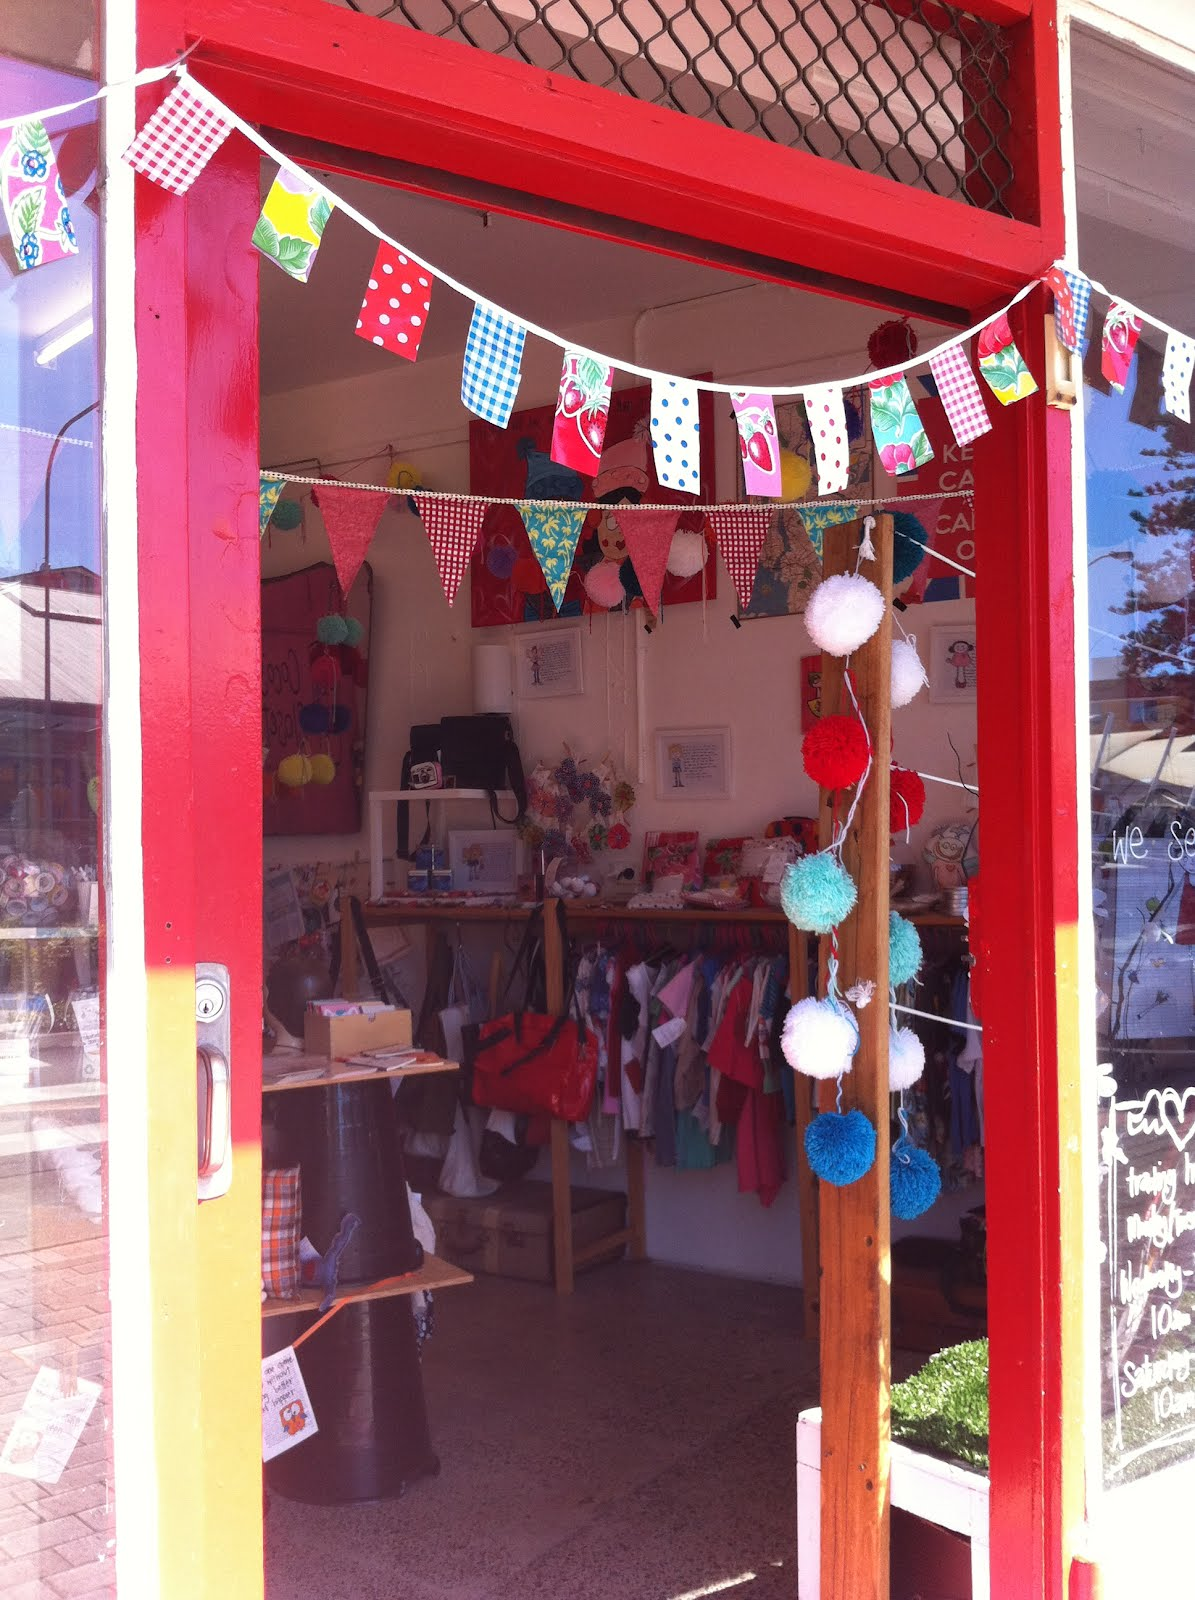 Coco S Closet Indie Craft Groovy Gifts And Funky Clothes